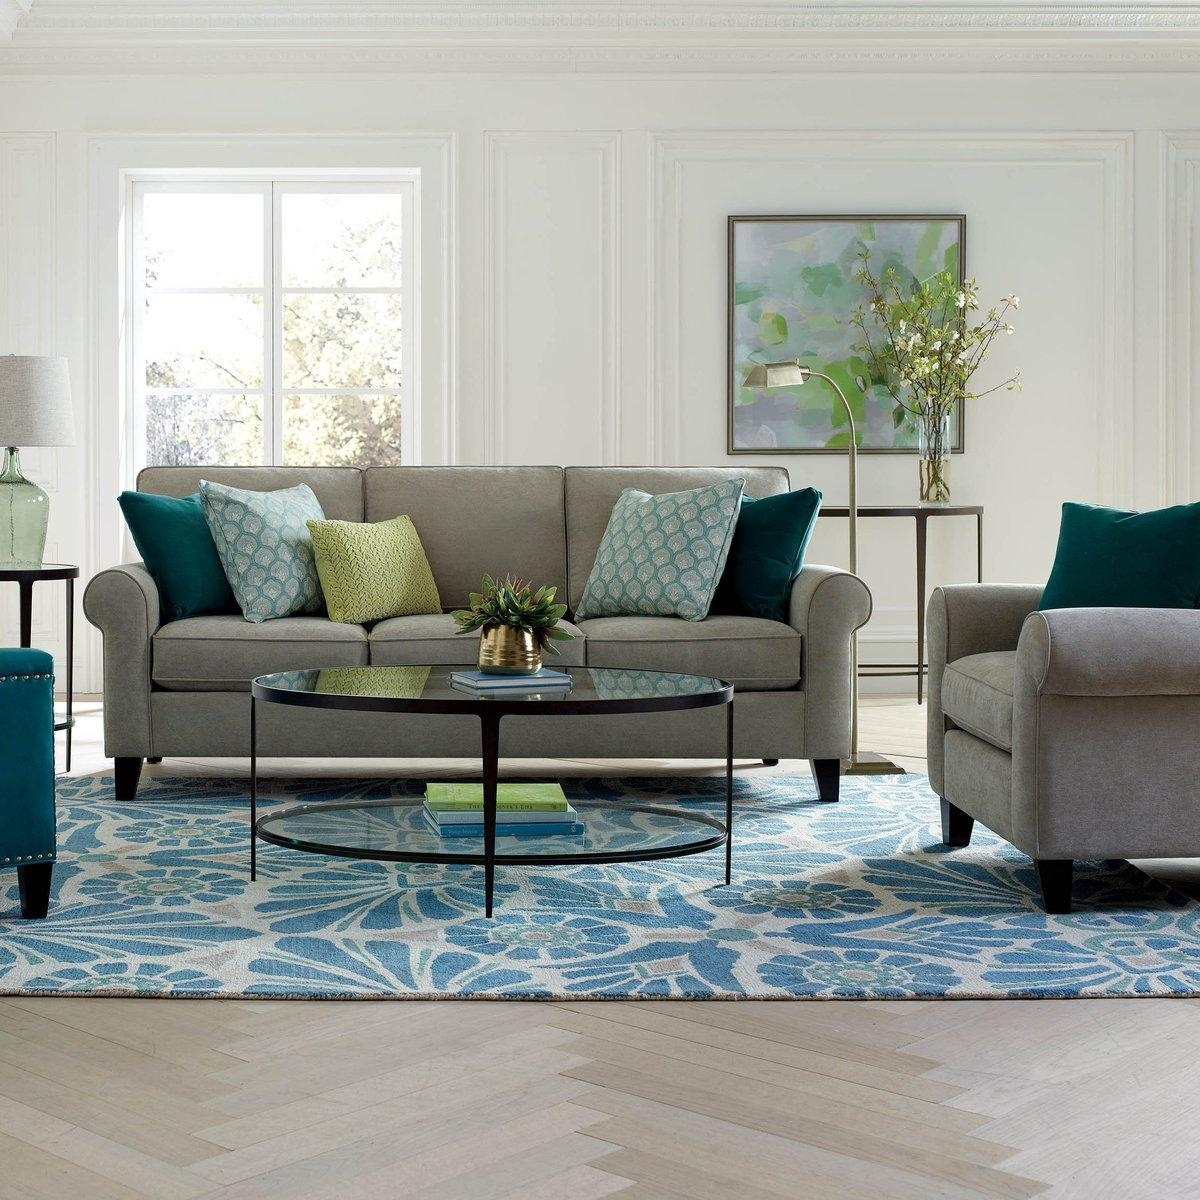 12 Things You Might Not Know About Top 100 Furniture Today Boston inside Boston Interiors Sofas